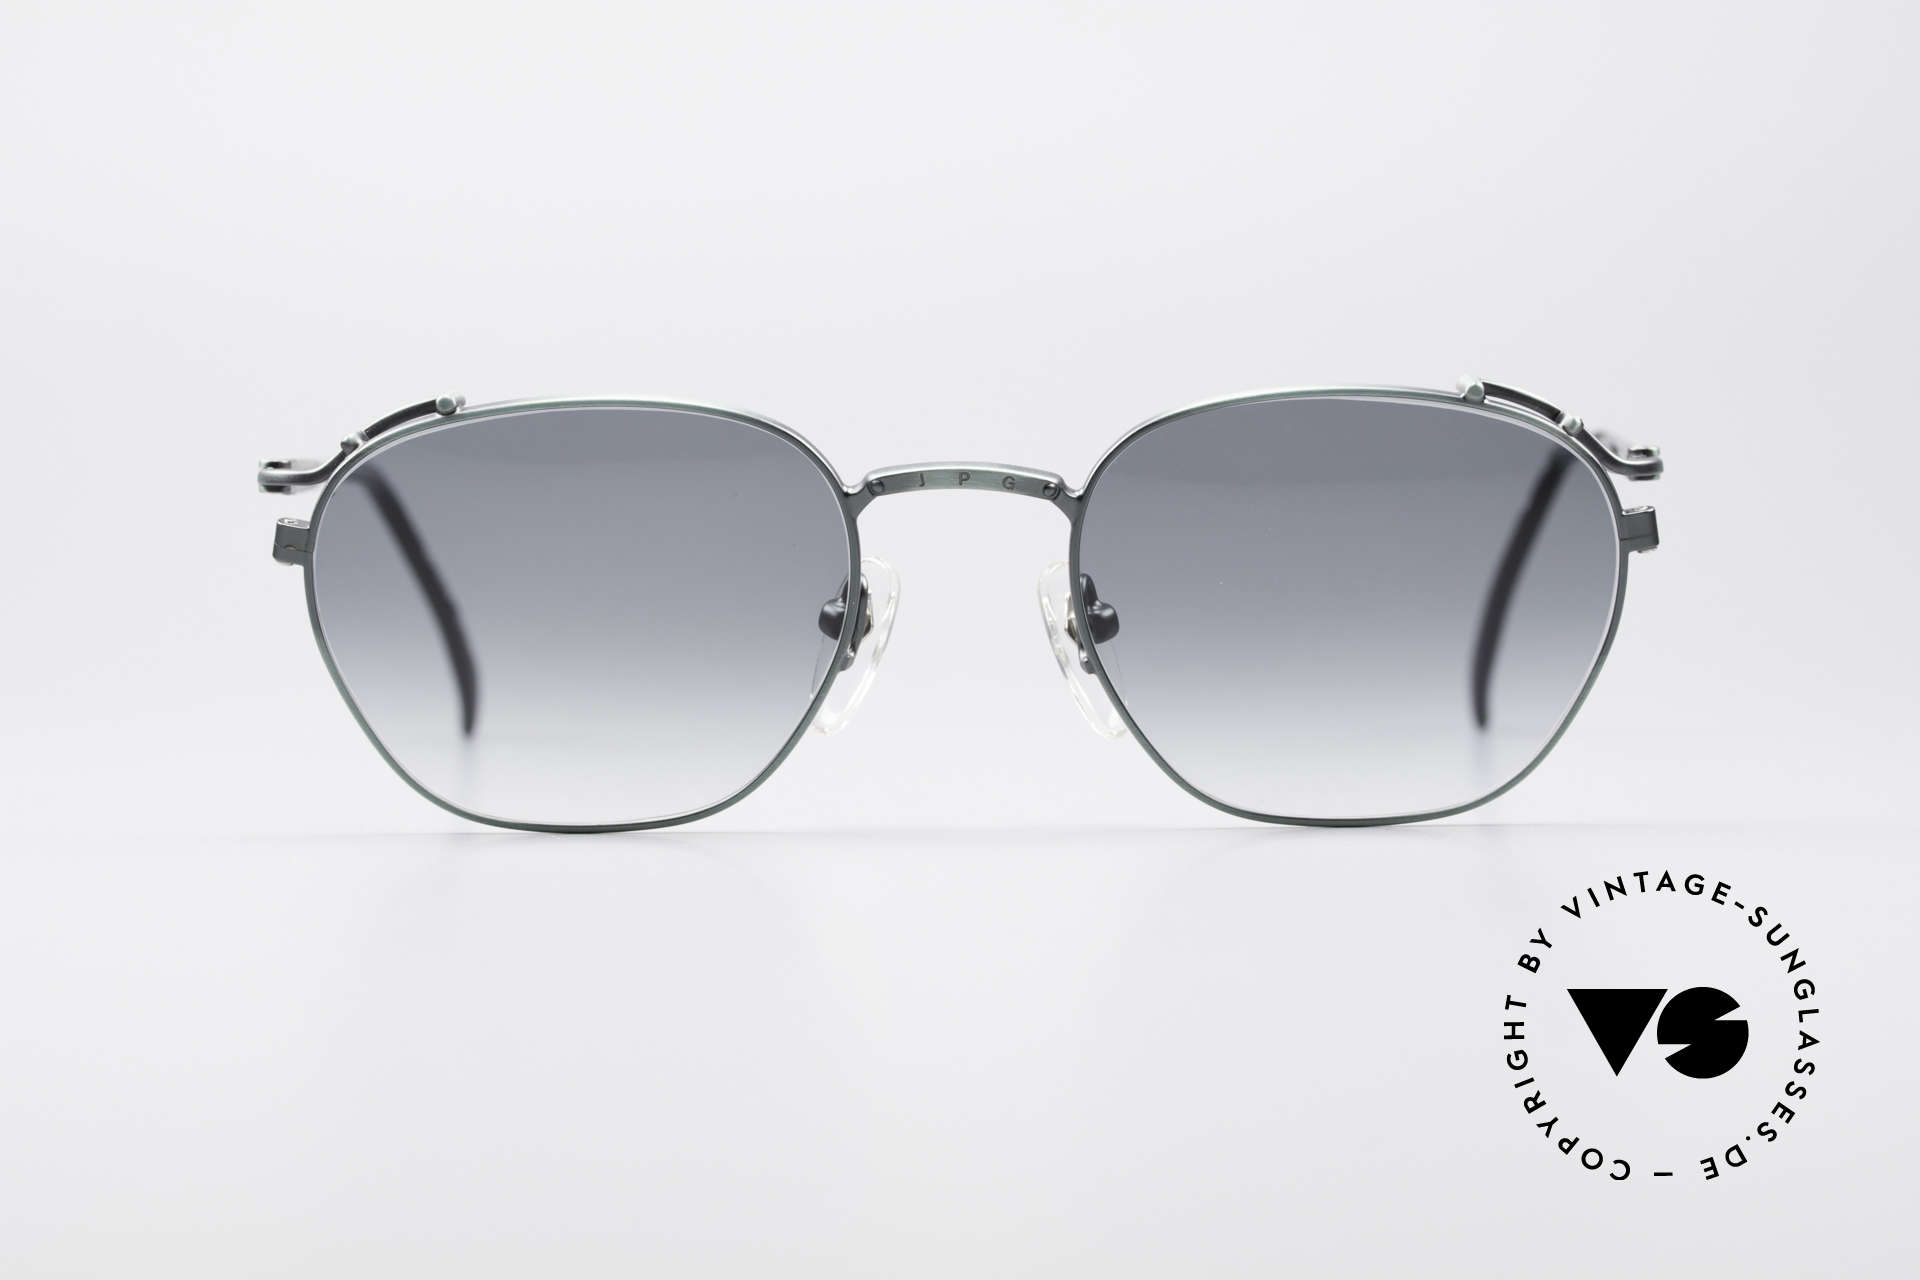 Jean Paul Gaultier 55-3173 90's Designer Sunglasses, ultra-light metal frame with many fancy details, Made for Men and Women